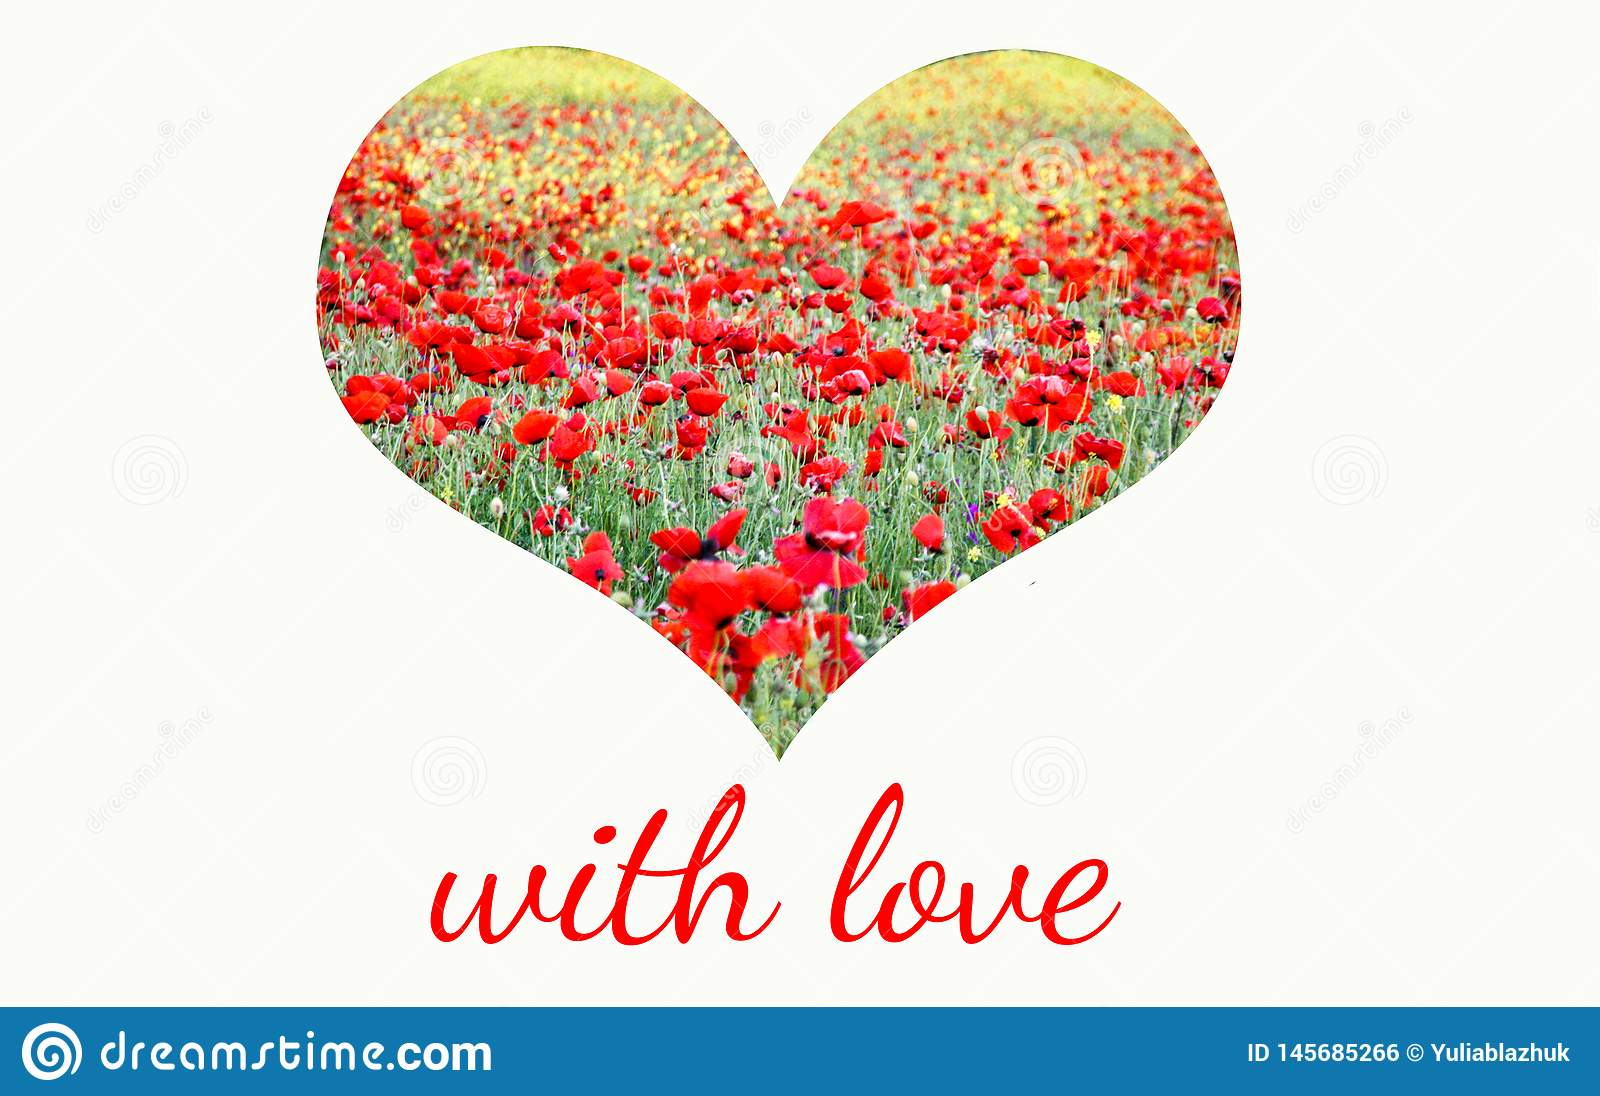 Heart of field of red poppies and yellow flowers and lettering With Love